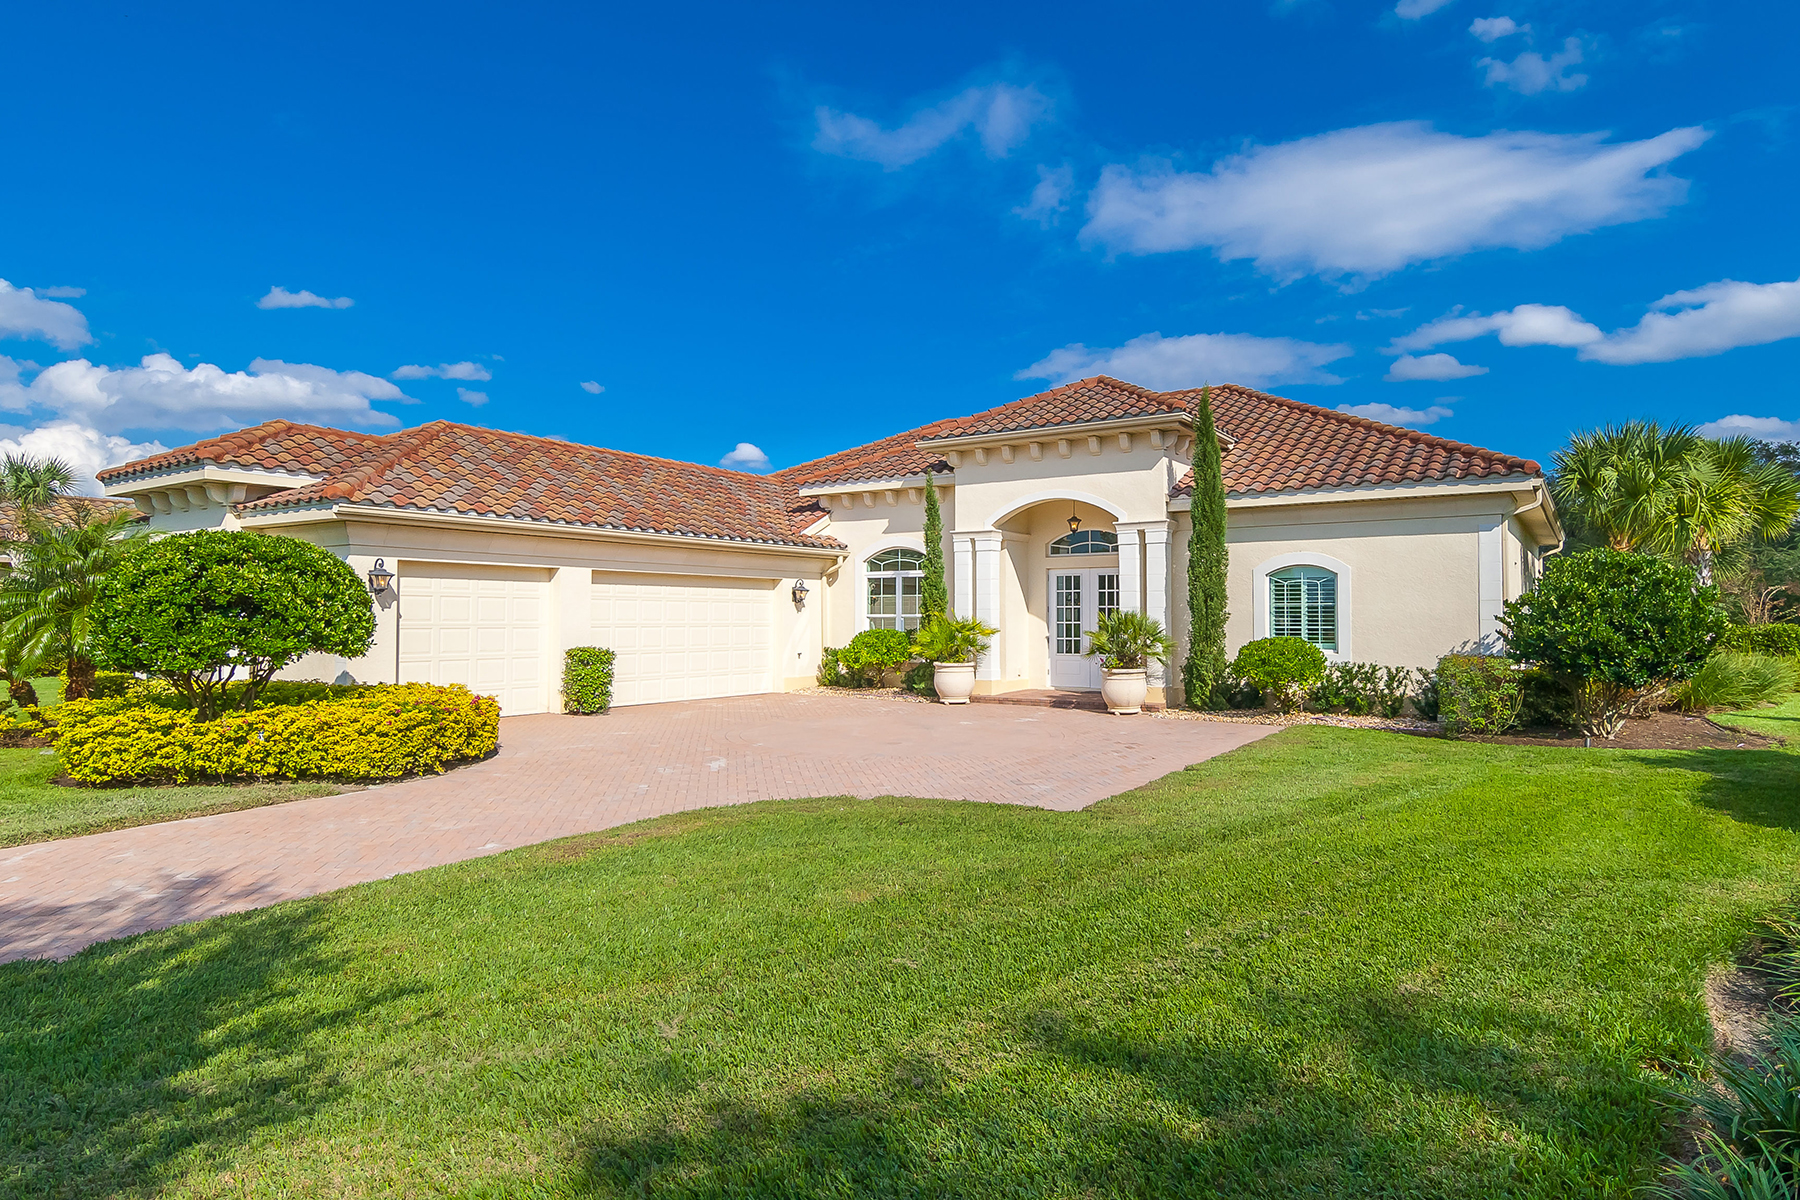 Single Family Home for Sale at SARASOTA-THE FOUNDERS CLUB 3224 Founders Club Dr Sarasota, Florida 34240 United States